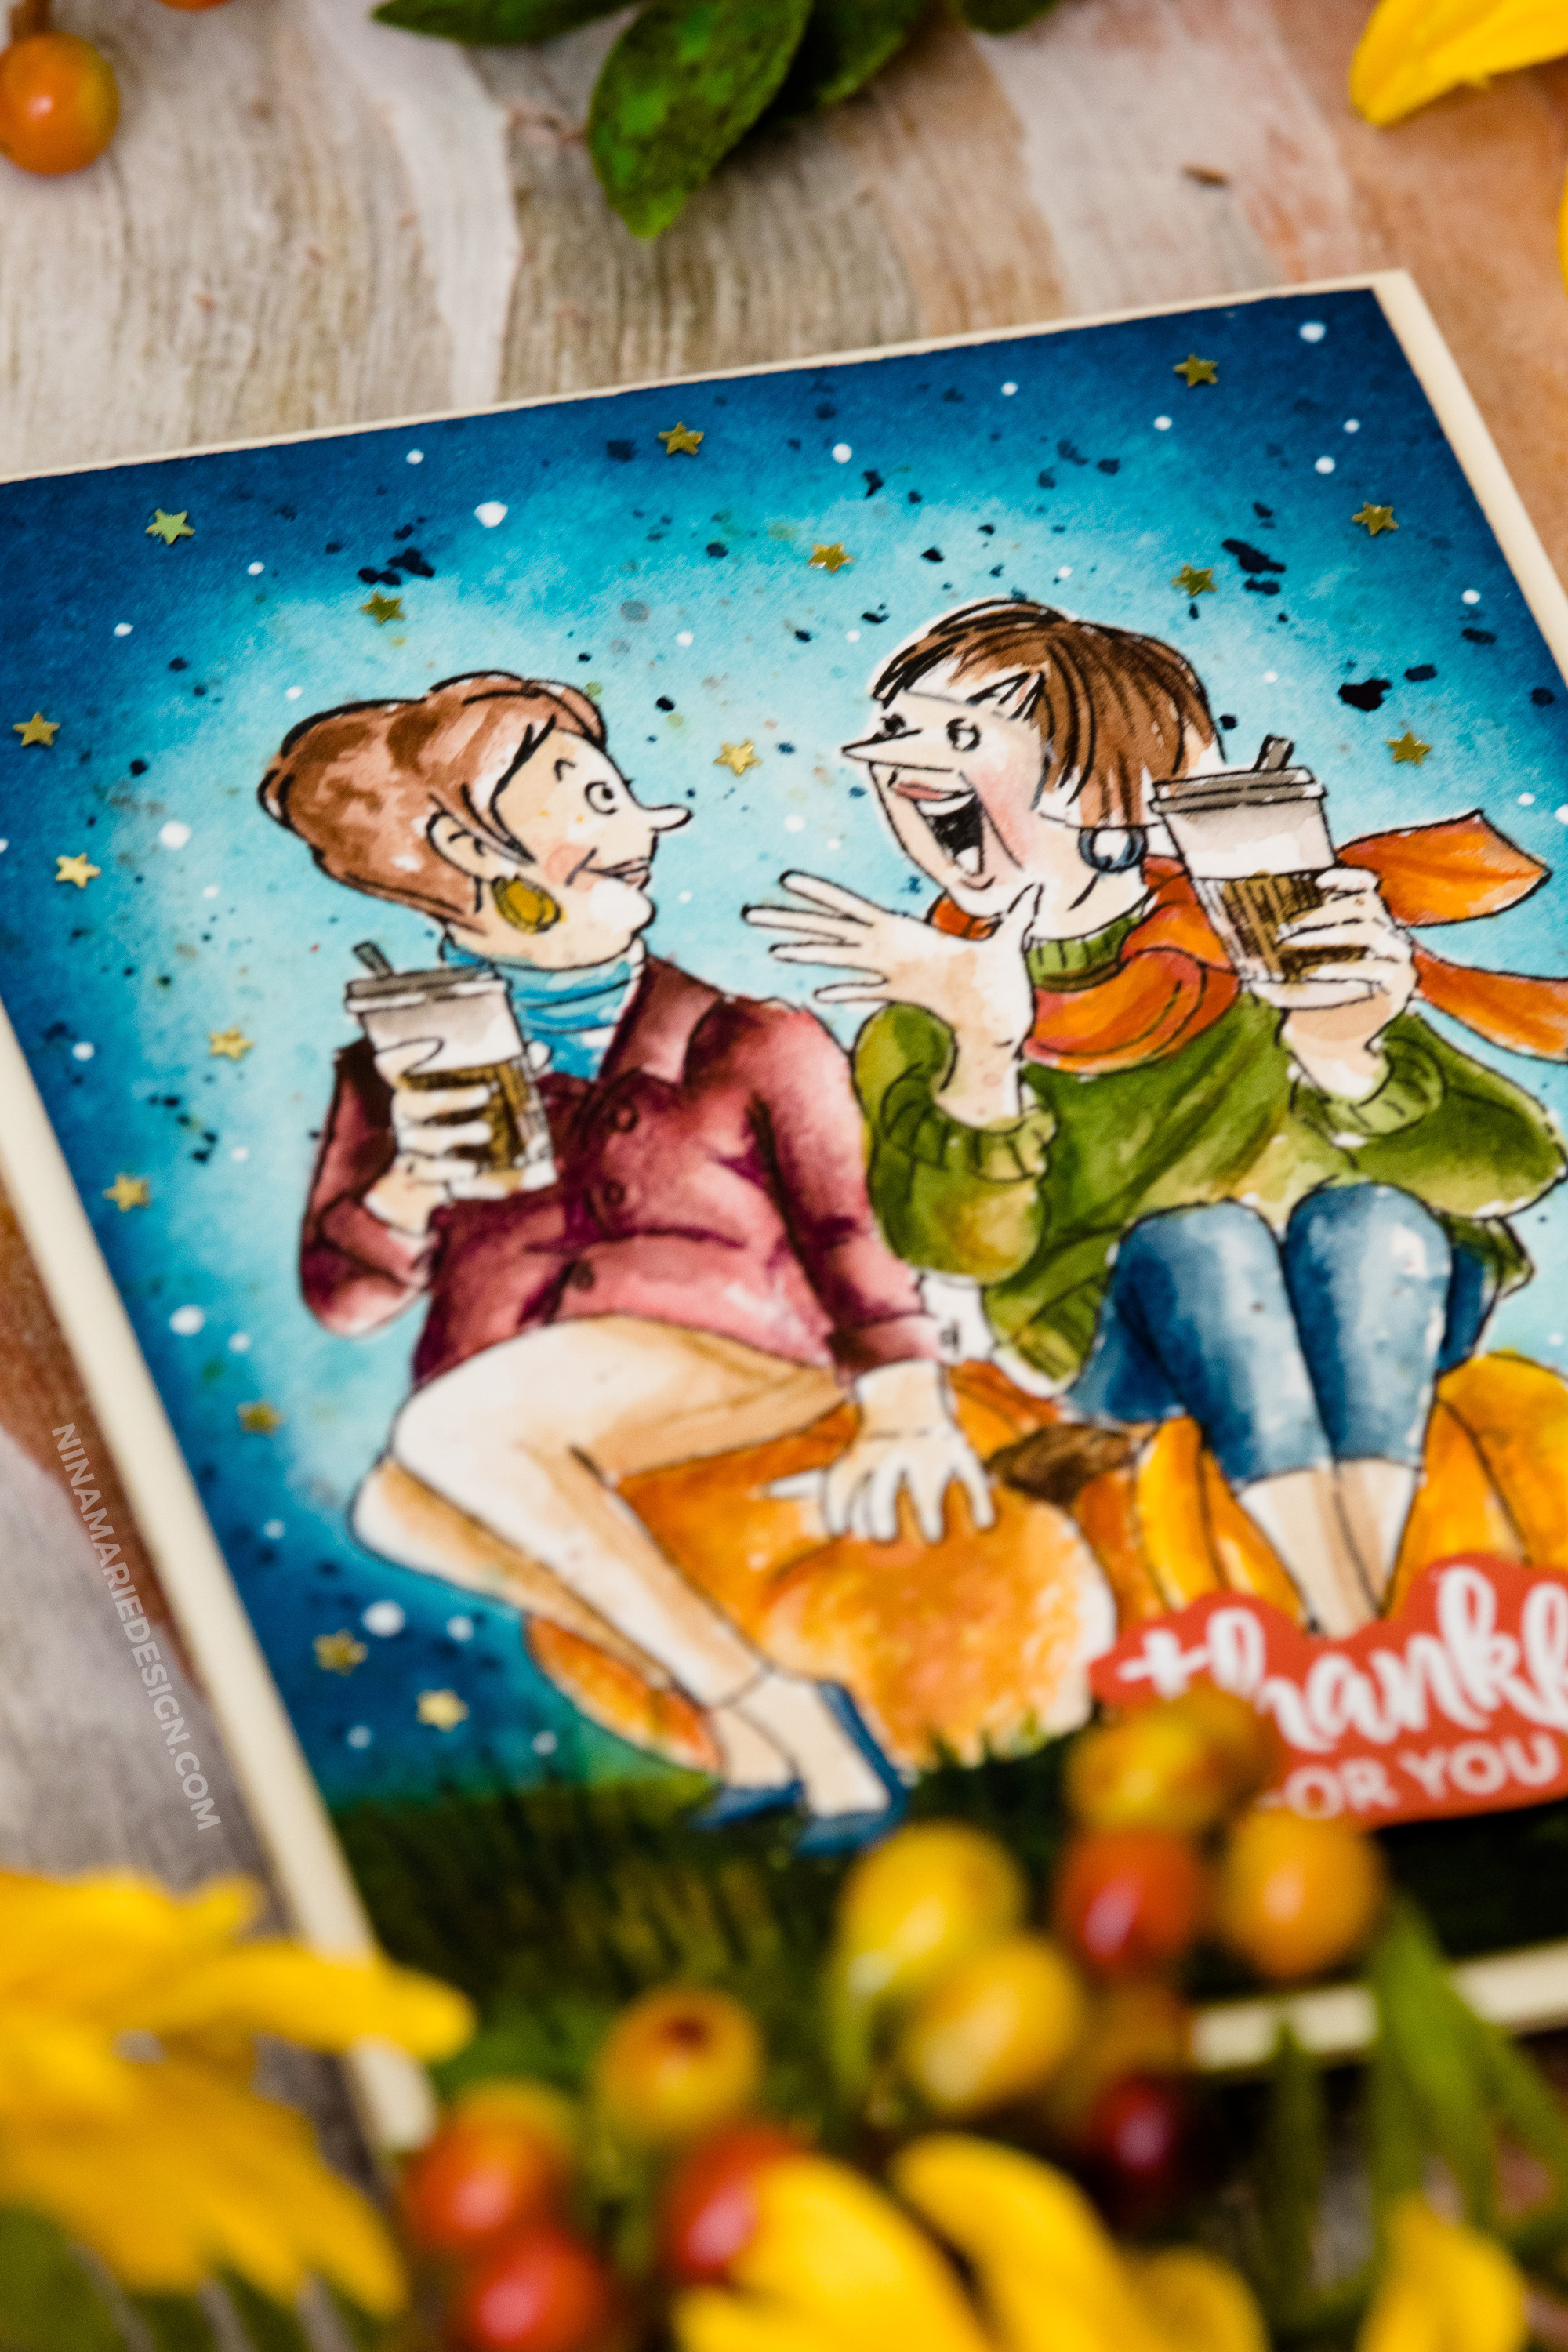 Mixed Media Coloring + Simon's STAMPtember® Exclusive with Art Impressions